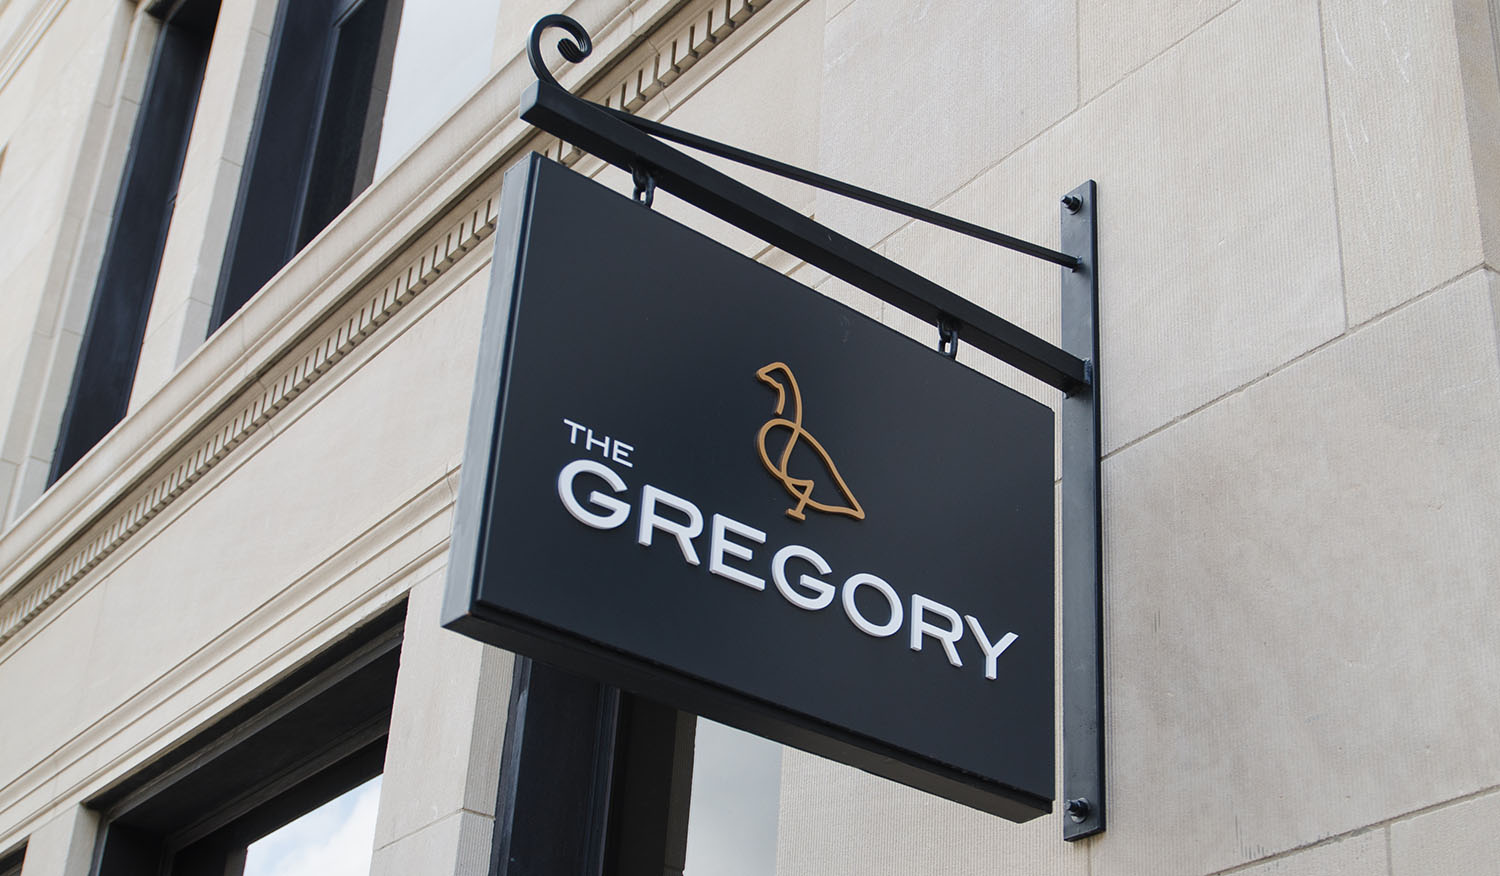 The Gregory | Signage